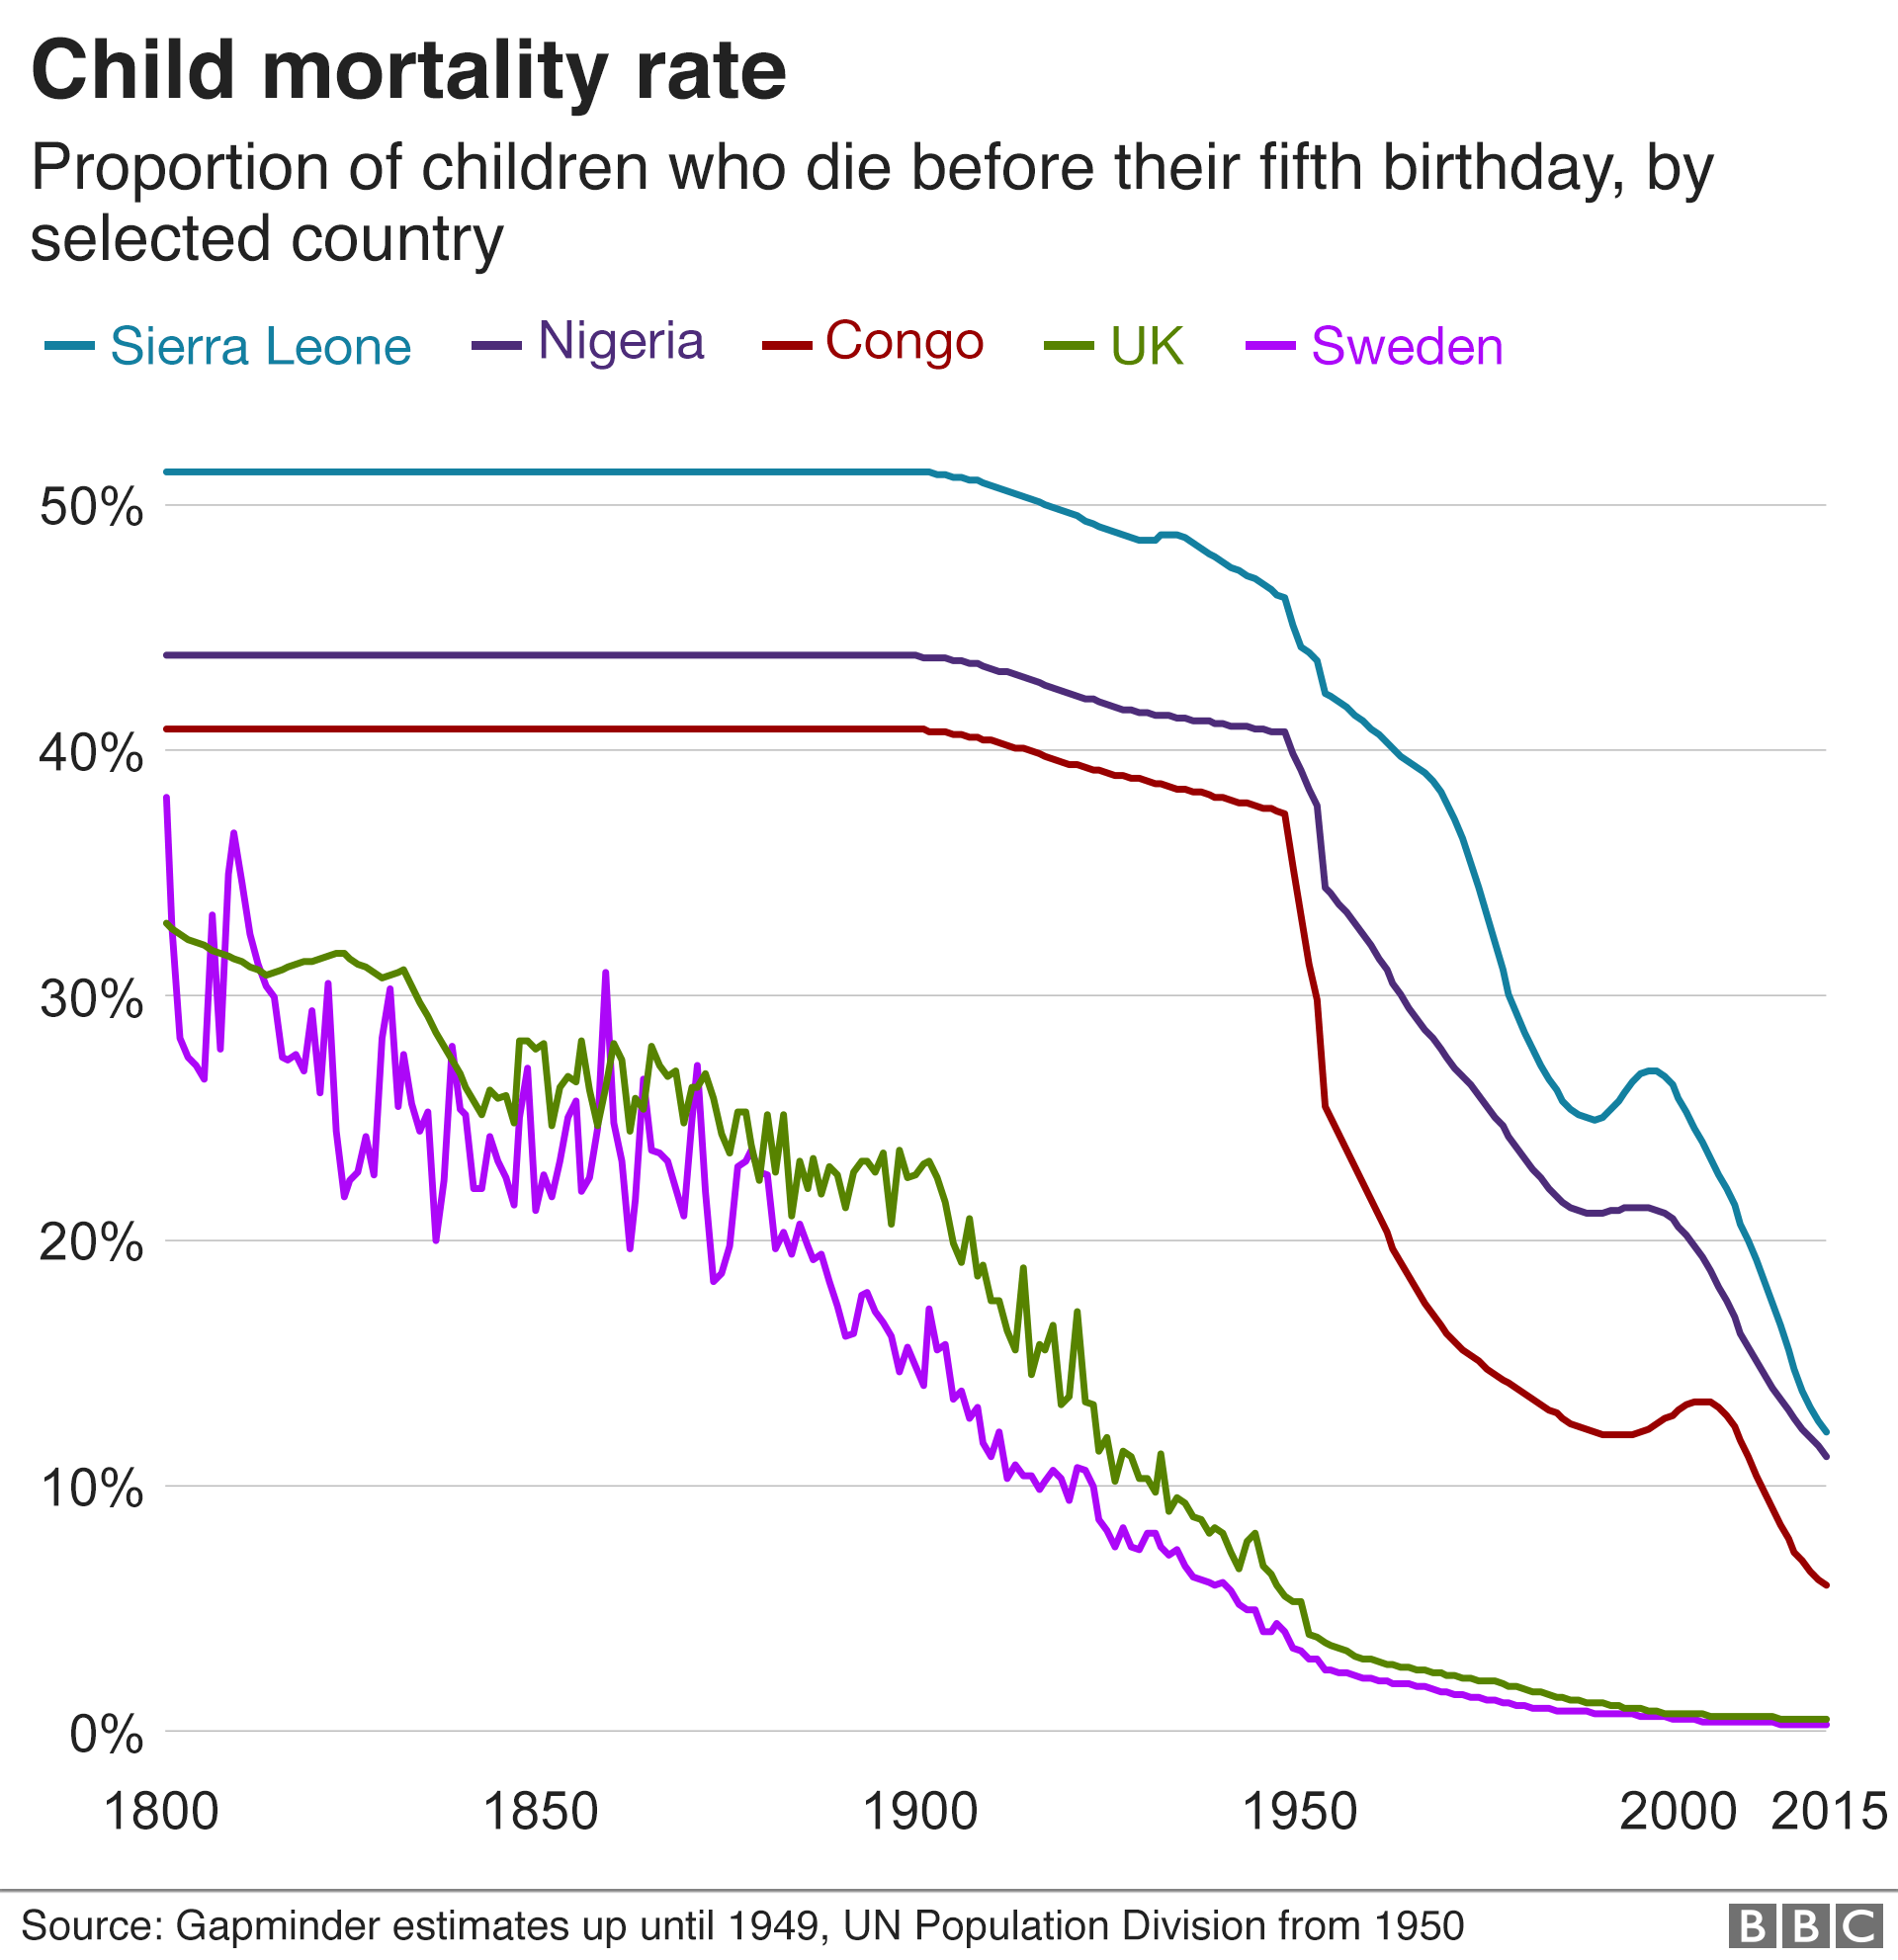 Child mortality rate by selected country